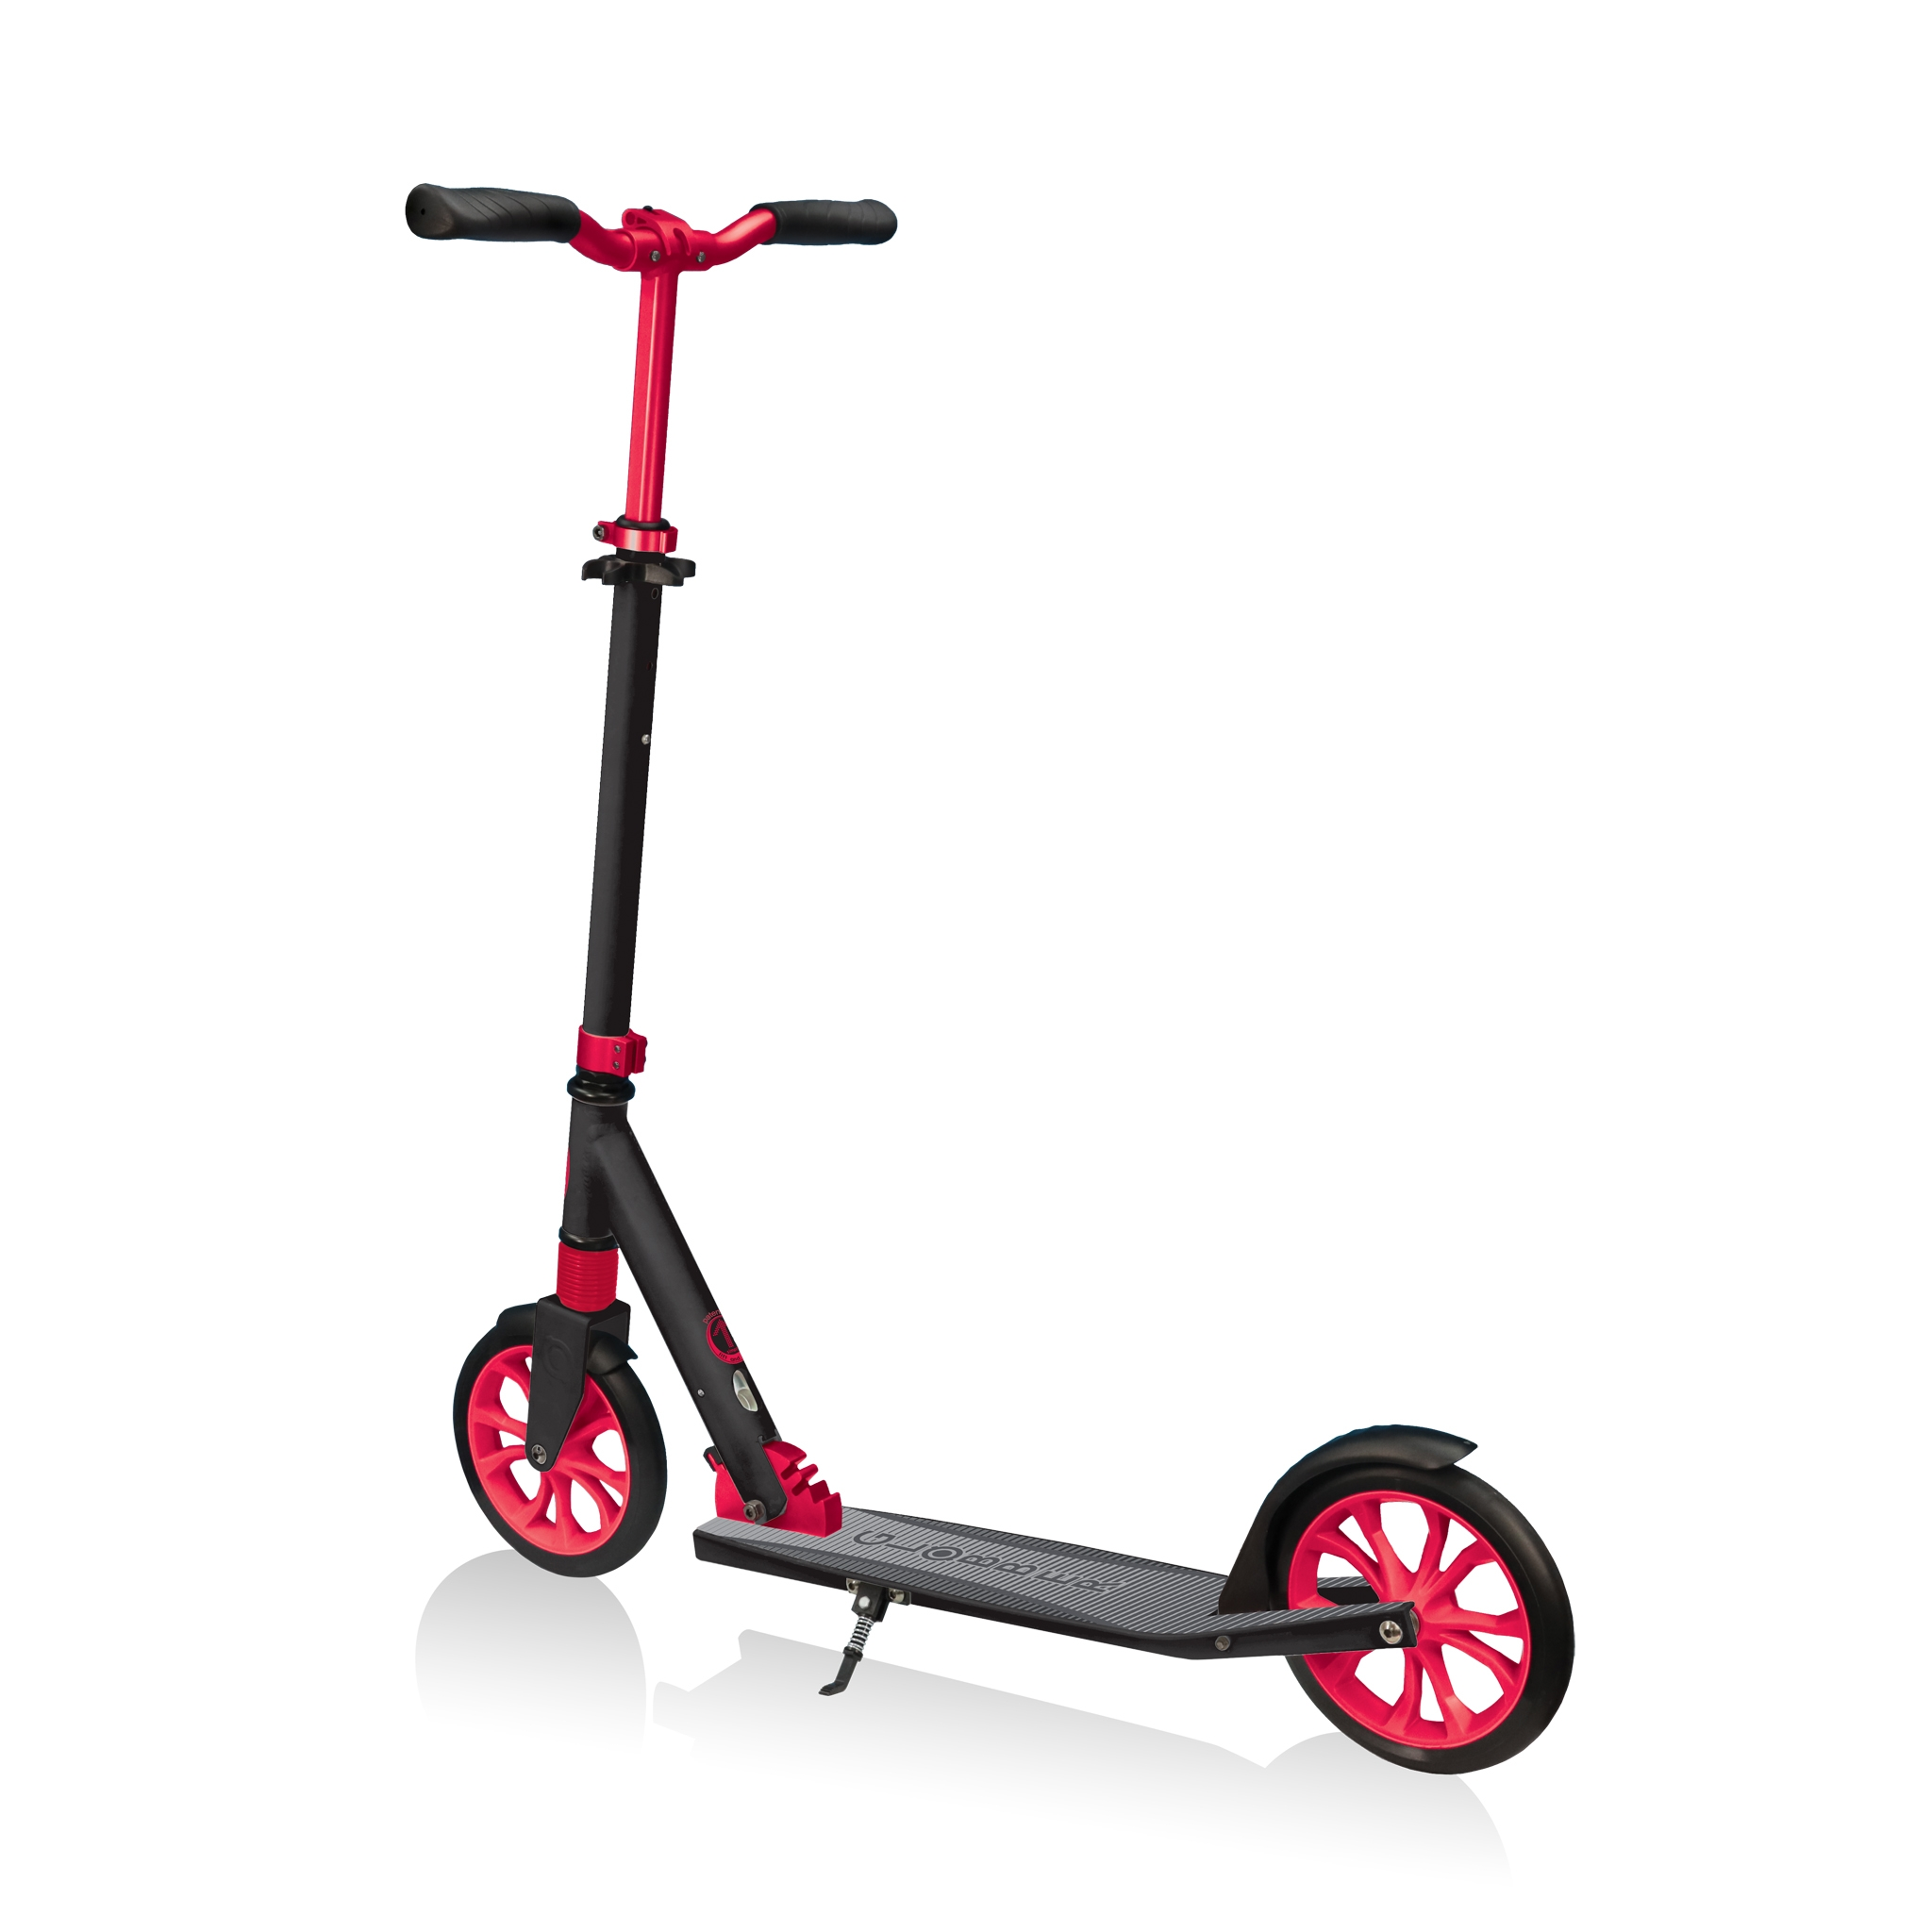 Globber-NL-205-big-wheel-scooter-for-kids-with-front-suspension